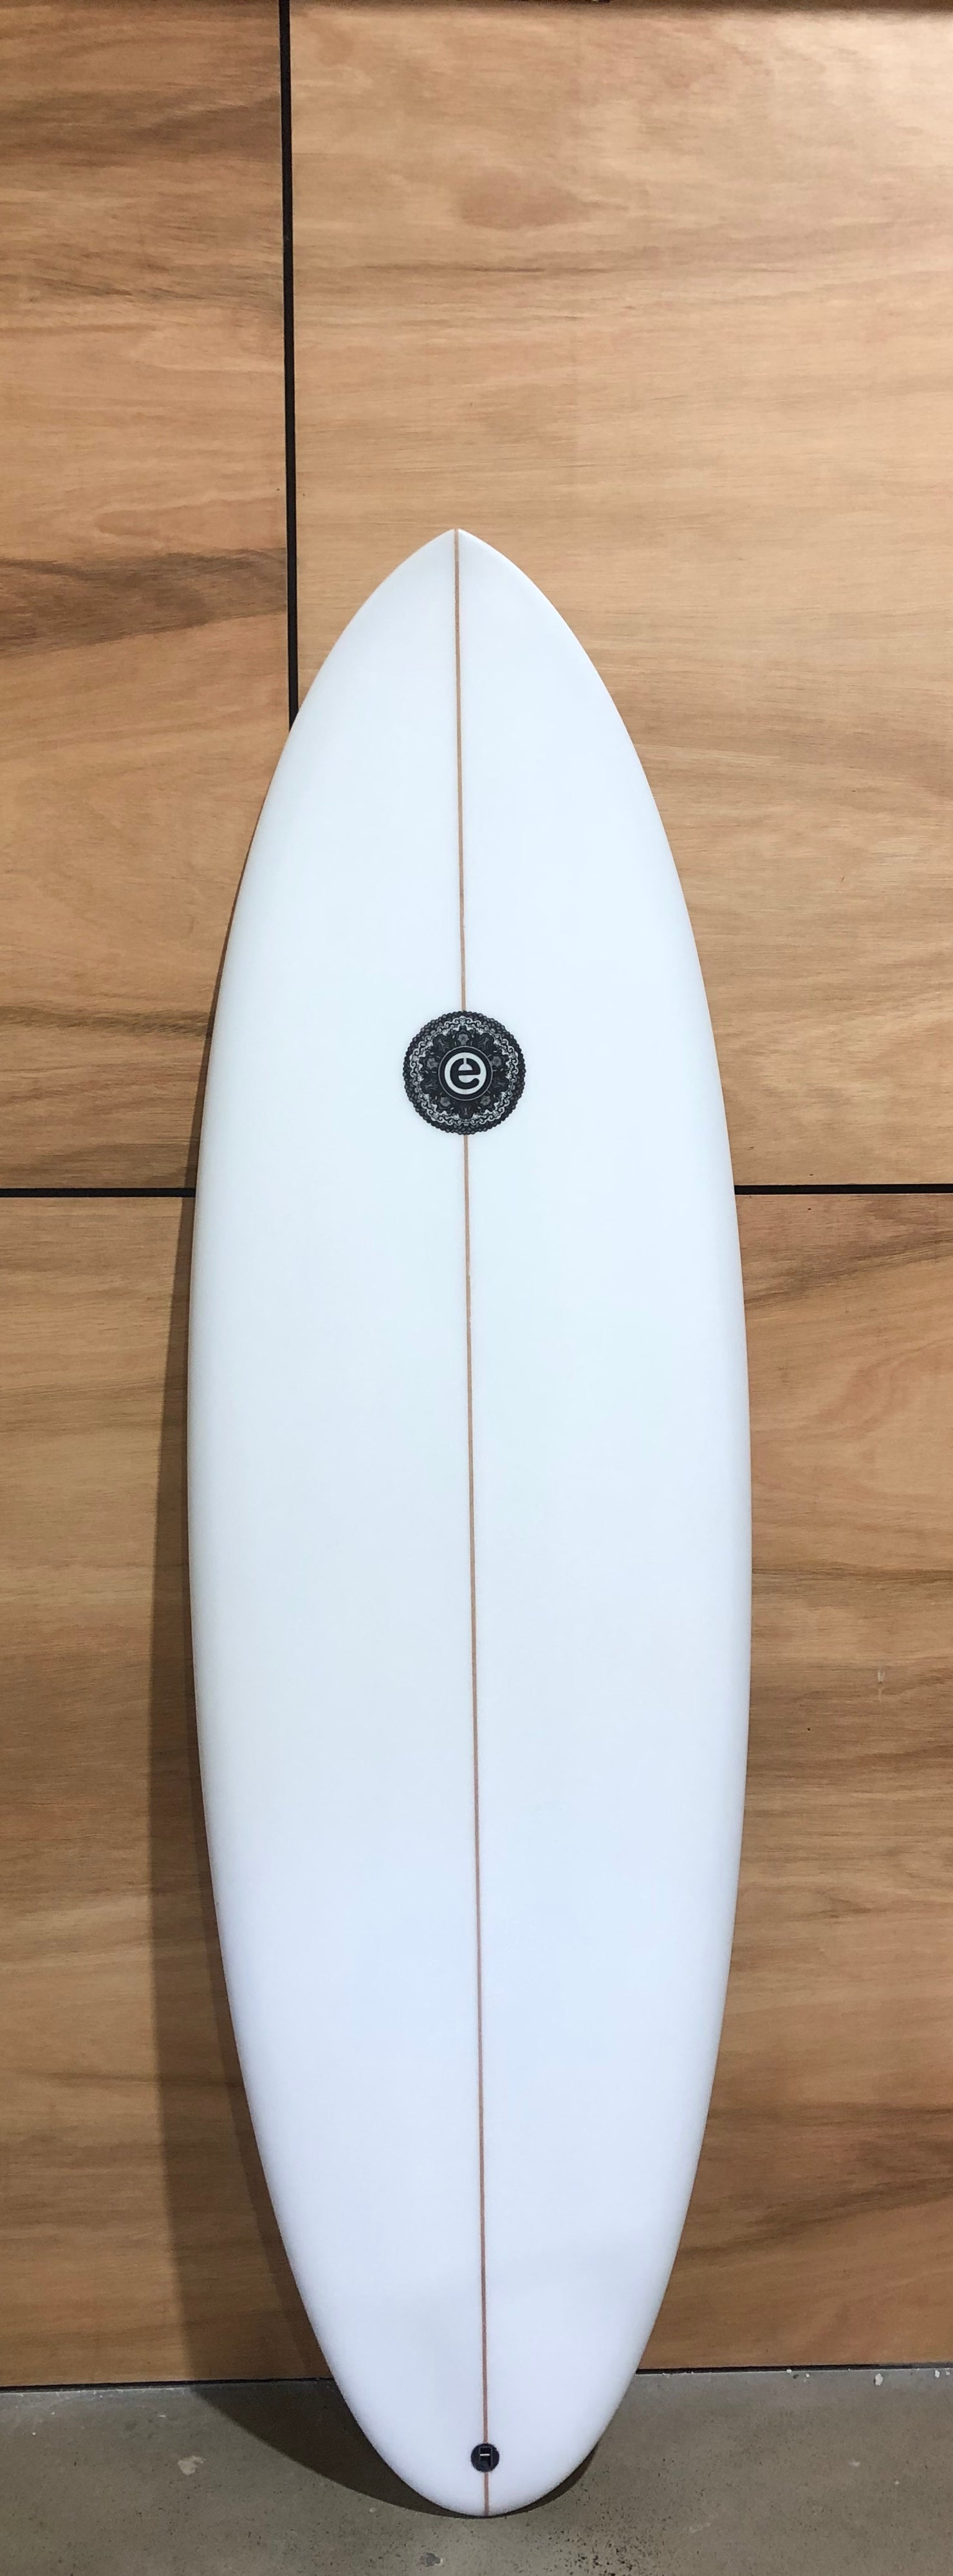 Element - SCRAMBLED EGG CLEAR - Board Store ElementSurfboard